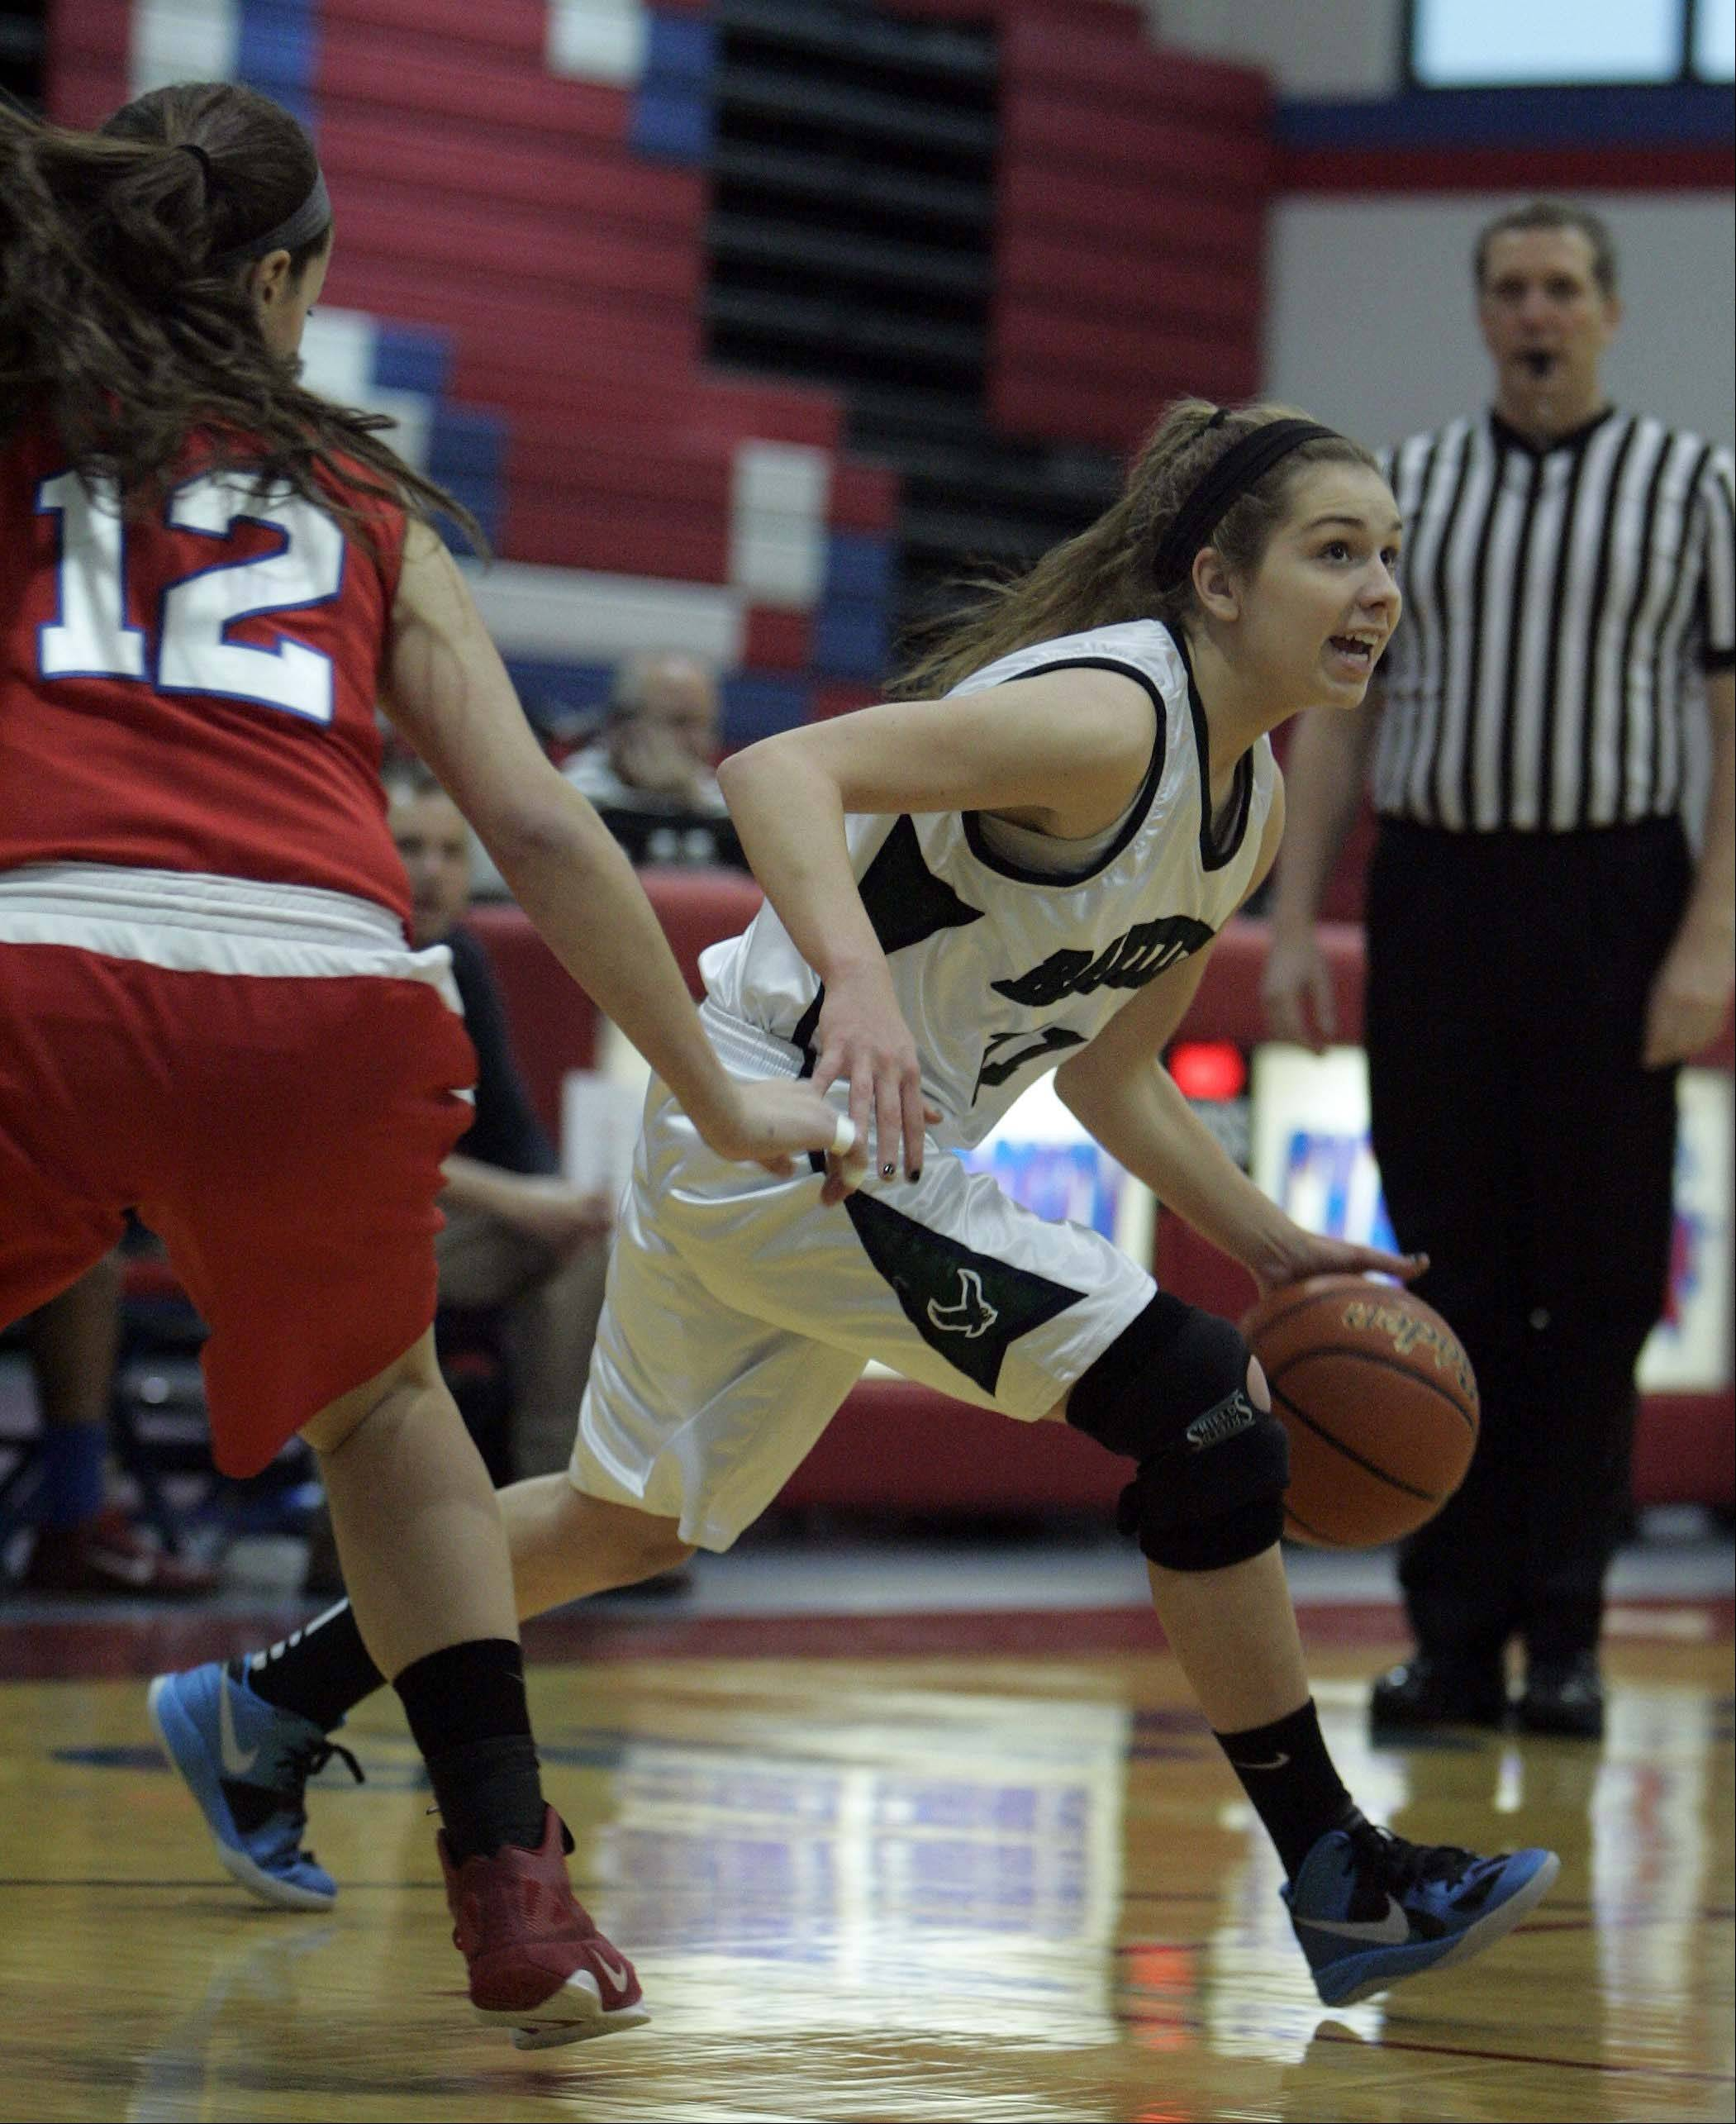 Images: Dundee-Crown vs Bartlett girls basketball